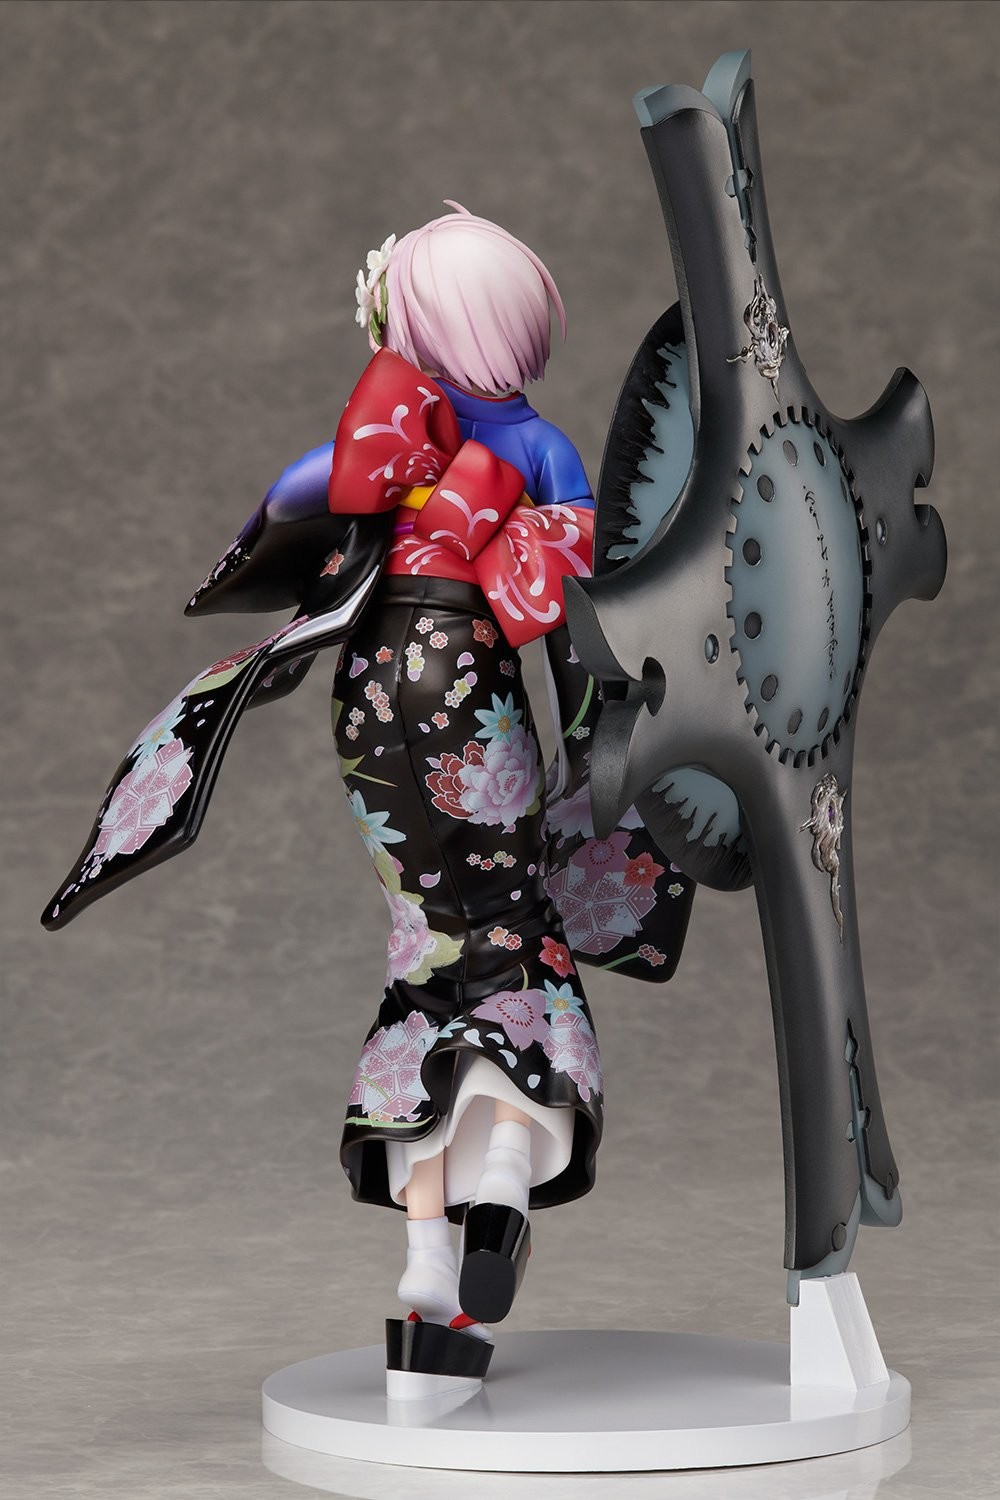 Figurine Mash Kyrielight - Fate/Grand Order